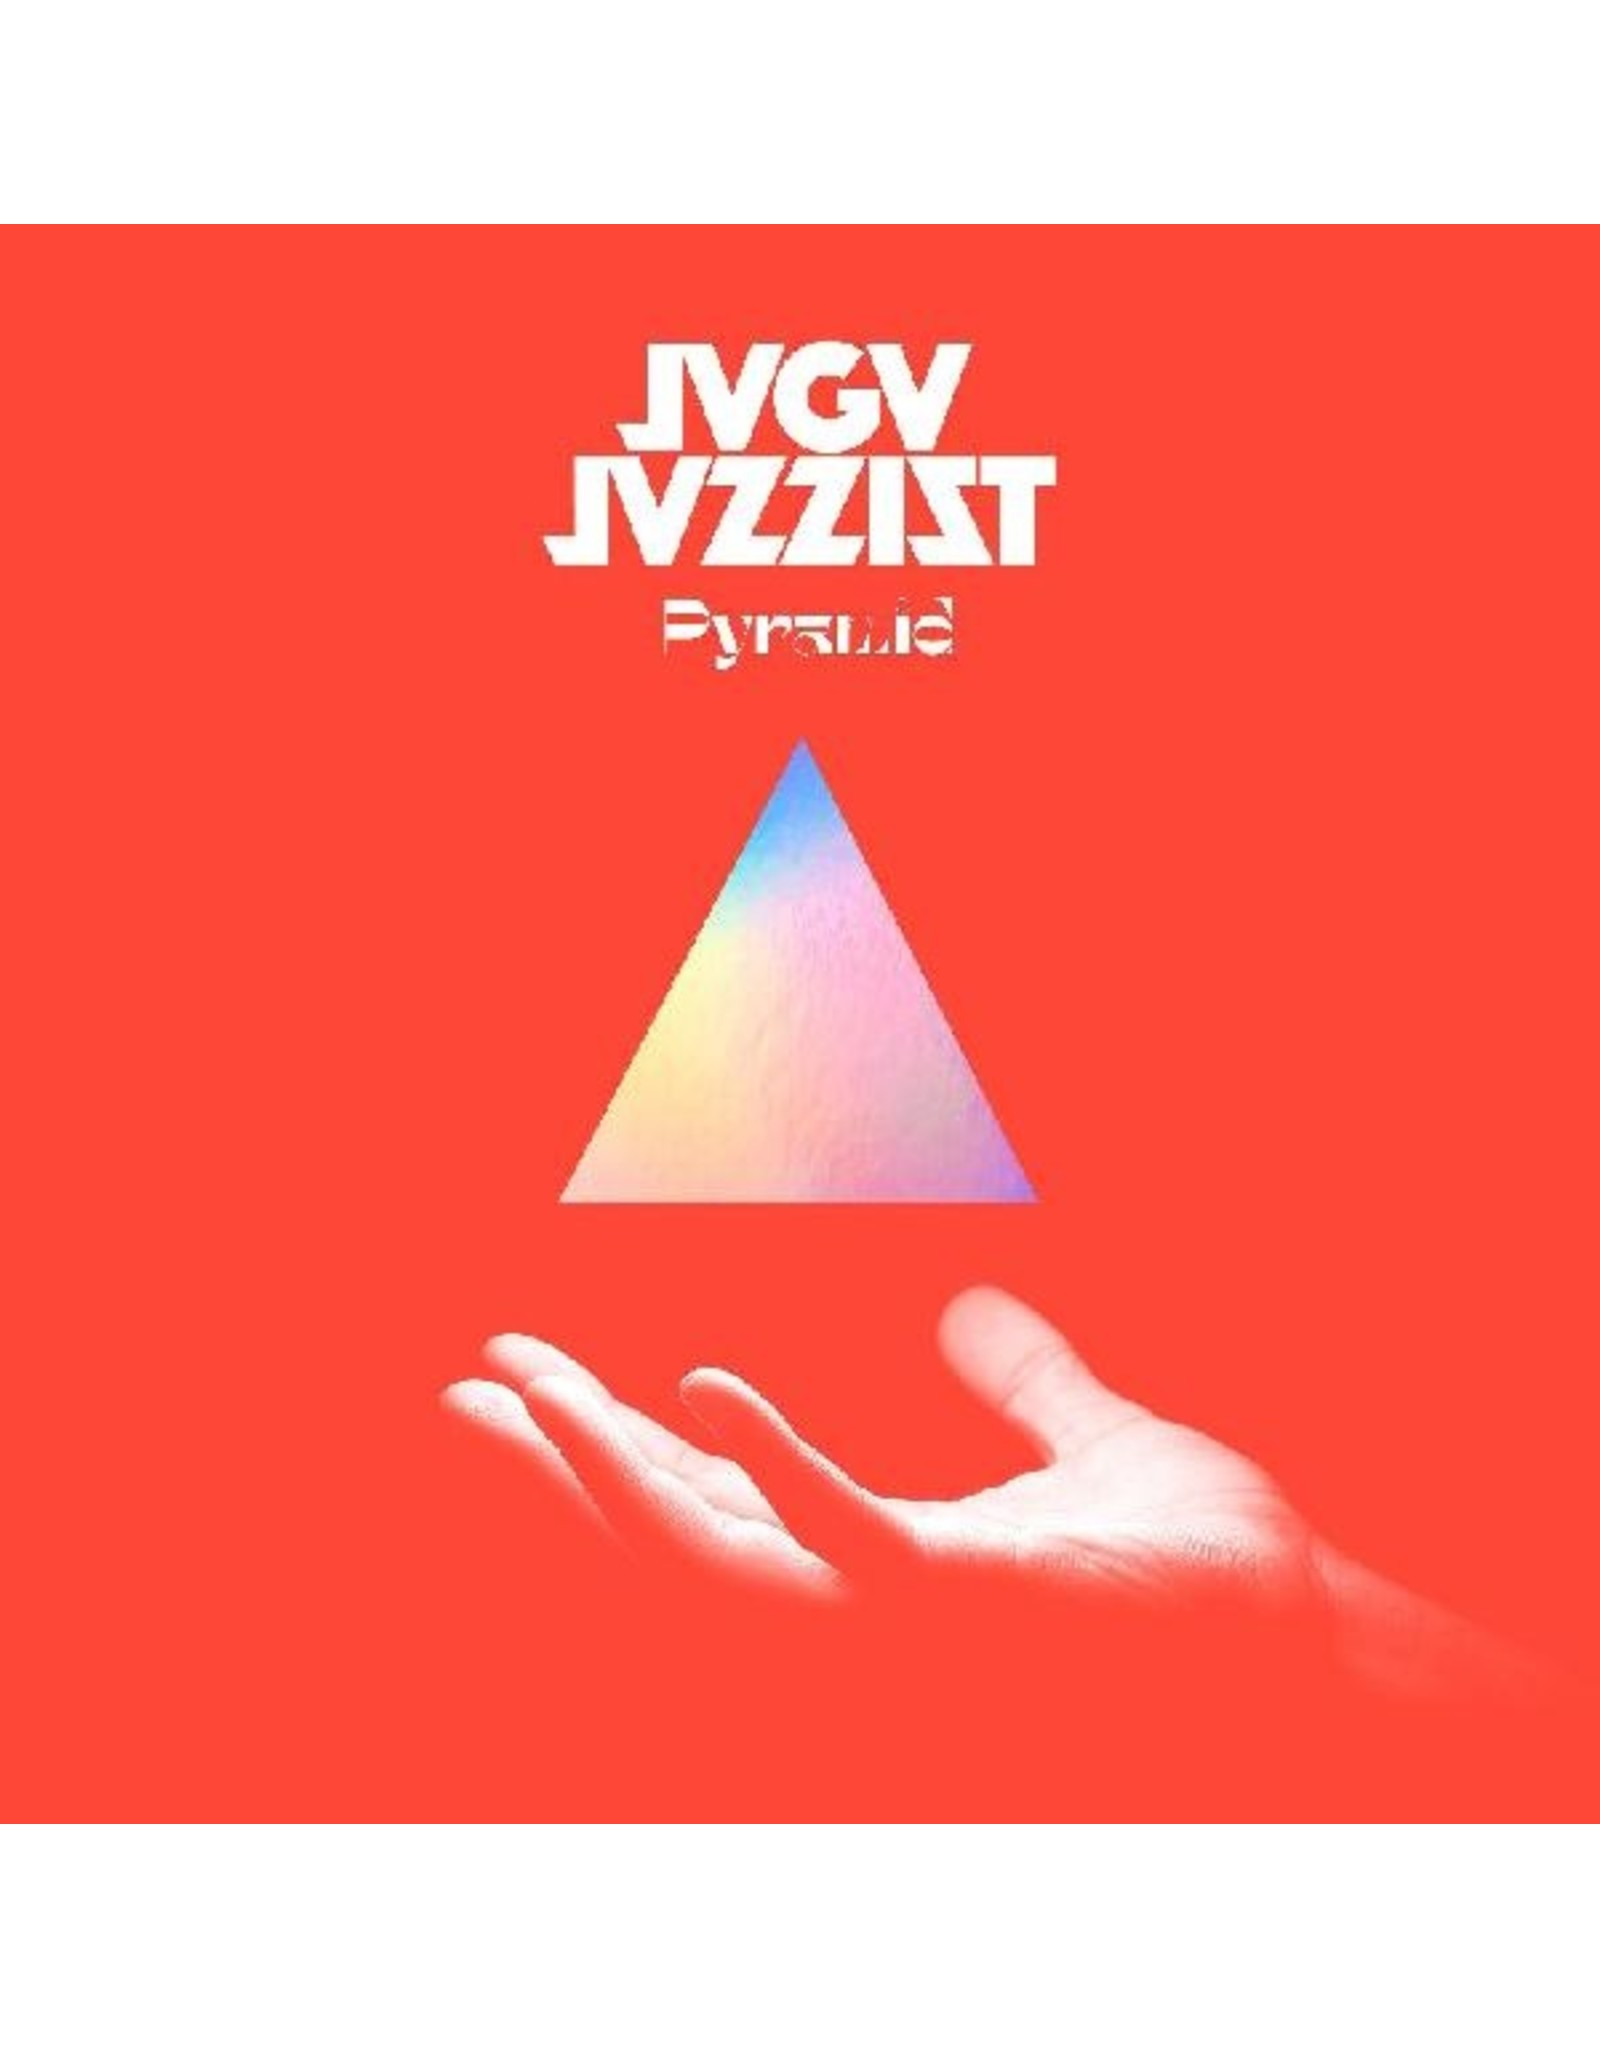 New Vinyl Jaga Jazzist - Pyramid (Colored) LP